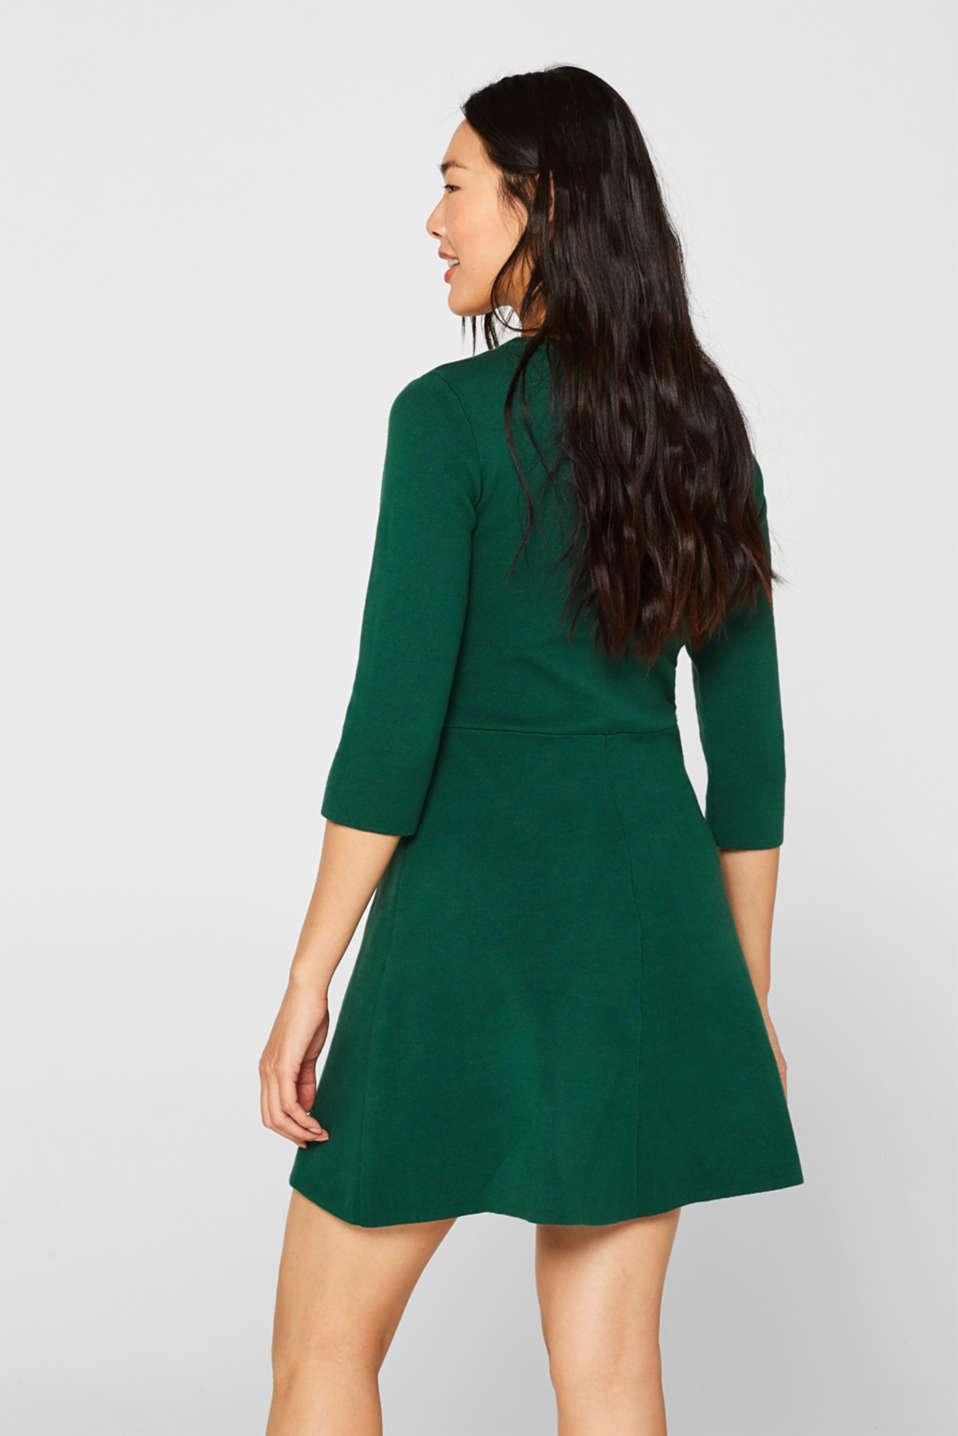 Compact knit dress in an A-line silhouette, BOTTLE GREEN, detail image number 2